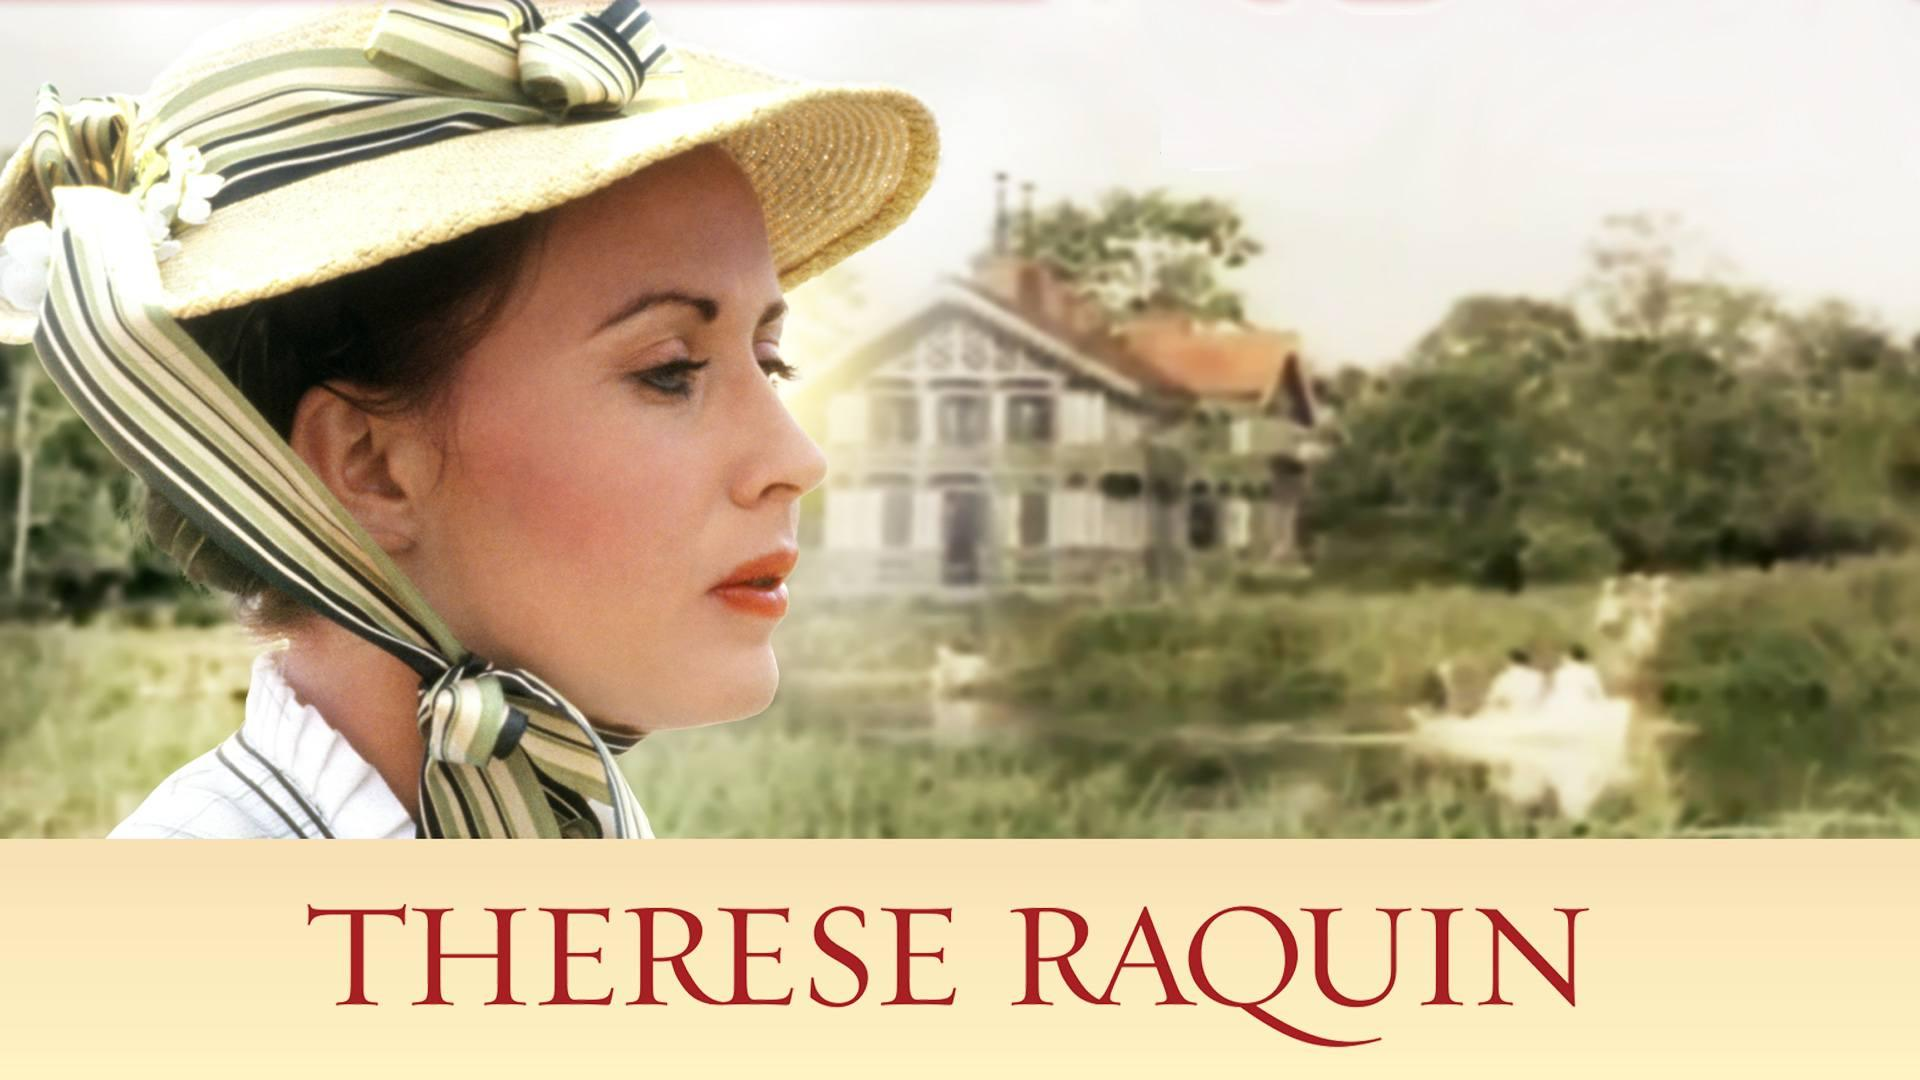 therese raquin A disturbing but excellently made, forgotten bbc drama in my opinion the best adaptation from the book therese raquin written by emile zola a dark & gloomy.